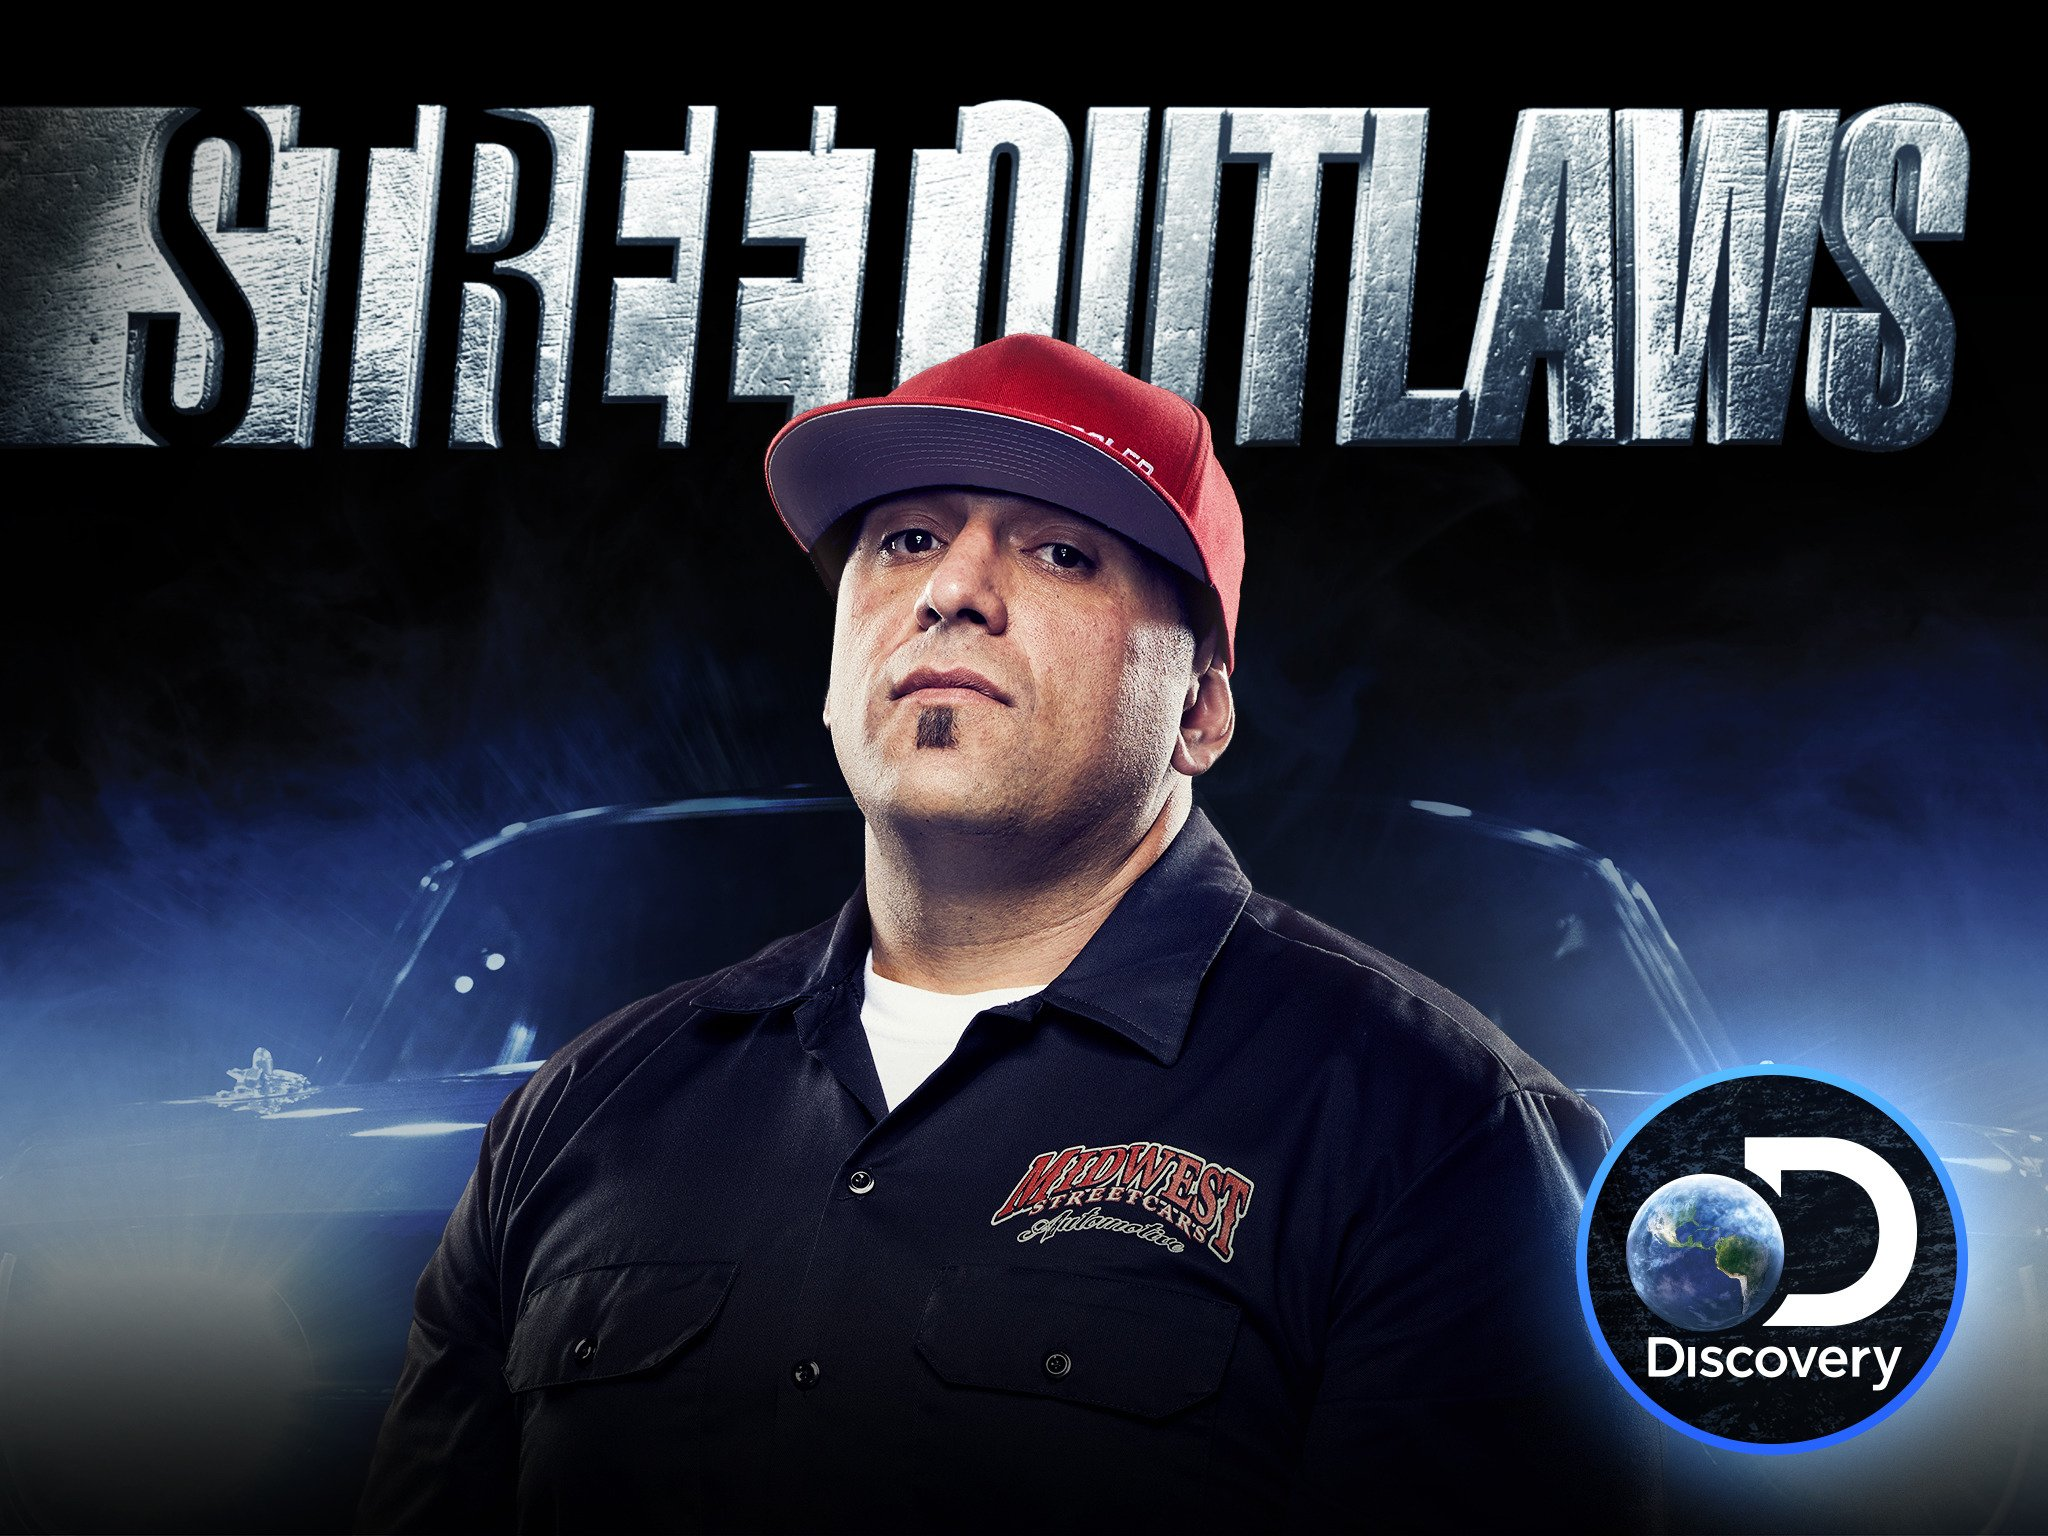 who wins gas monkey vs street outlaws mega race 2